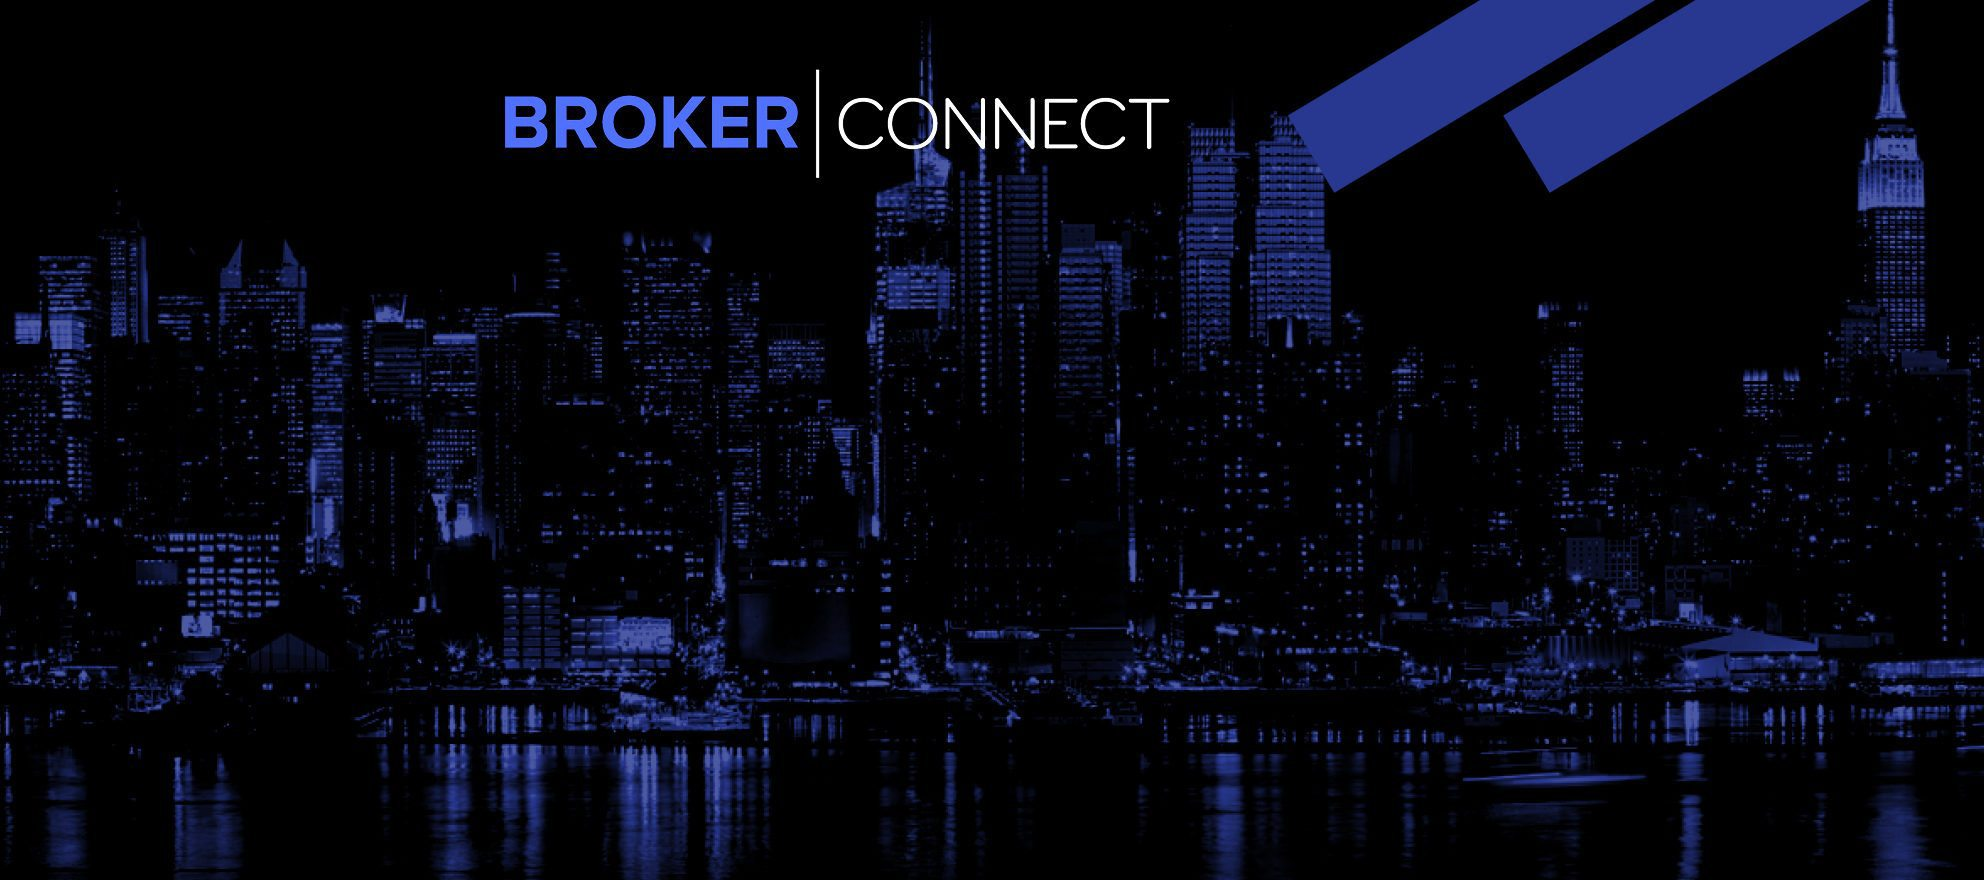 Broker Connect is best way to network and meet new customers